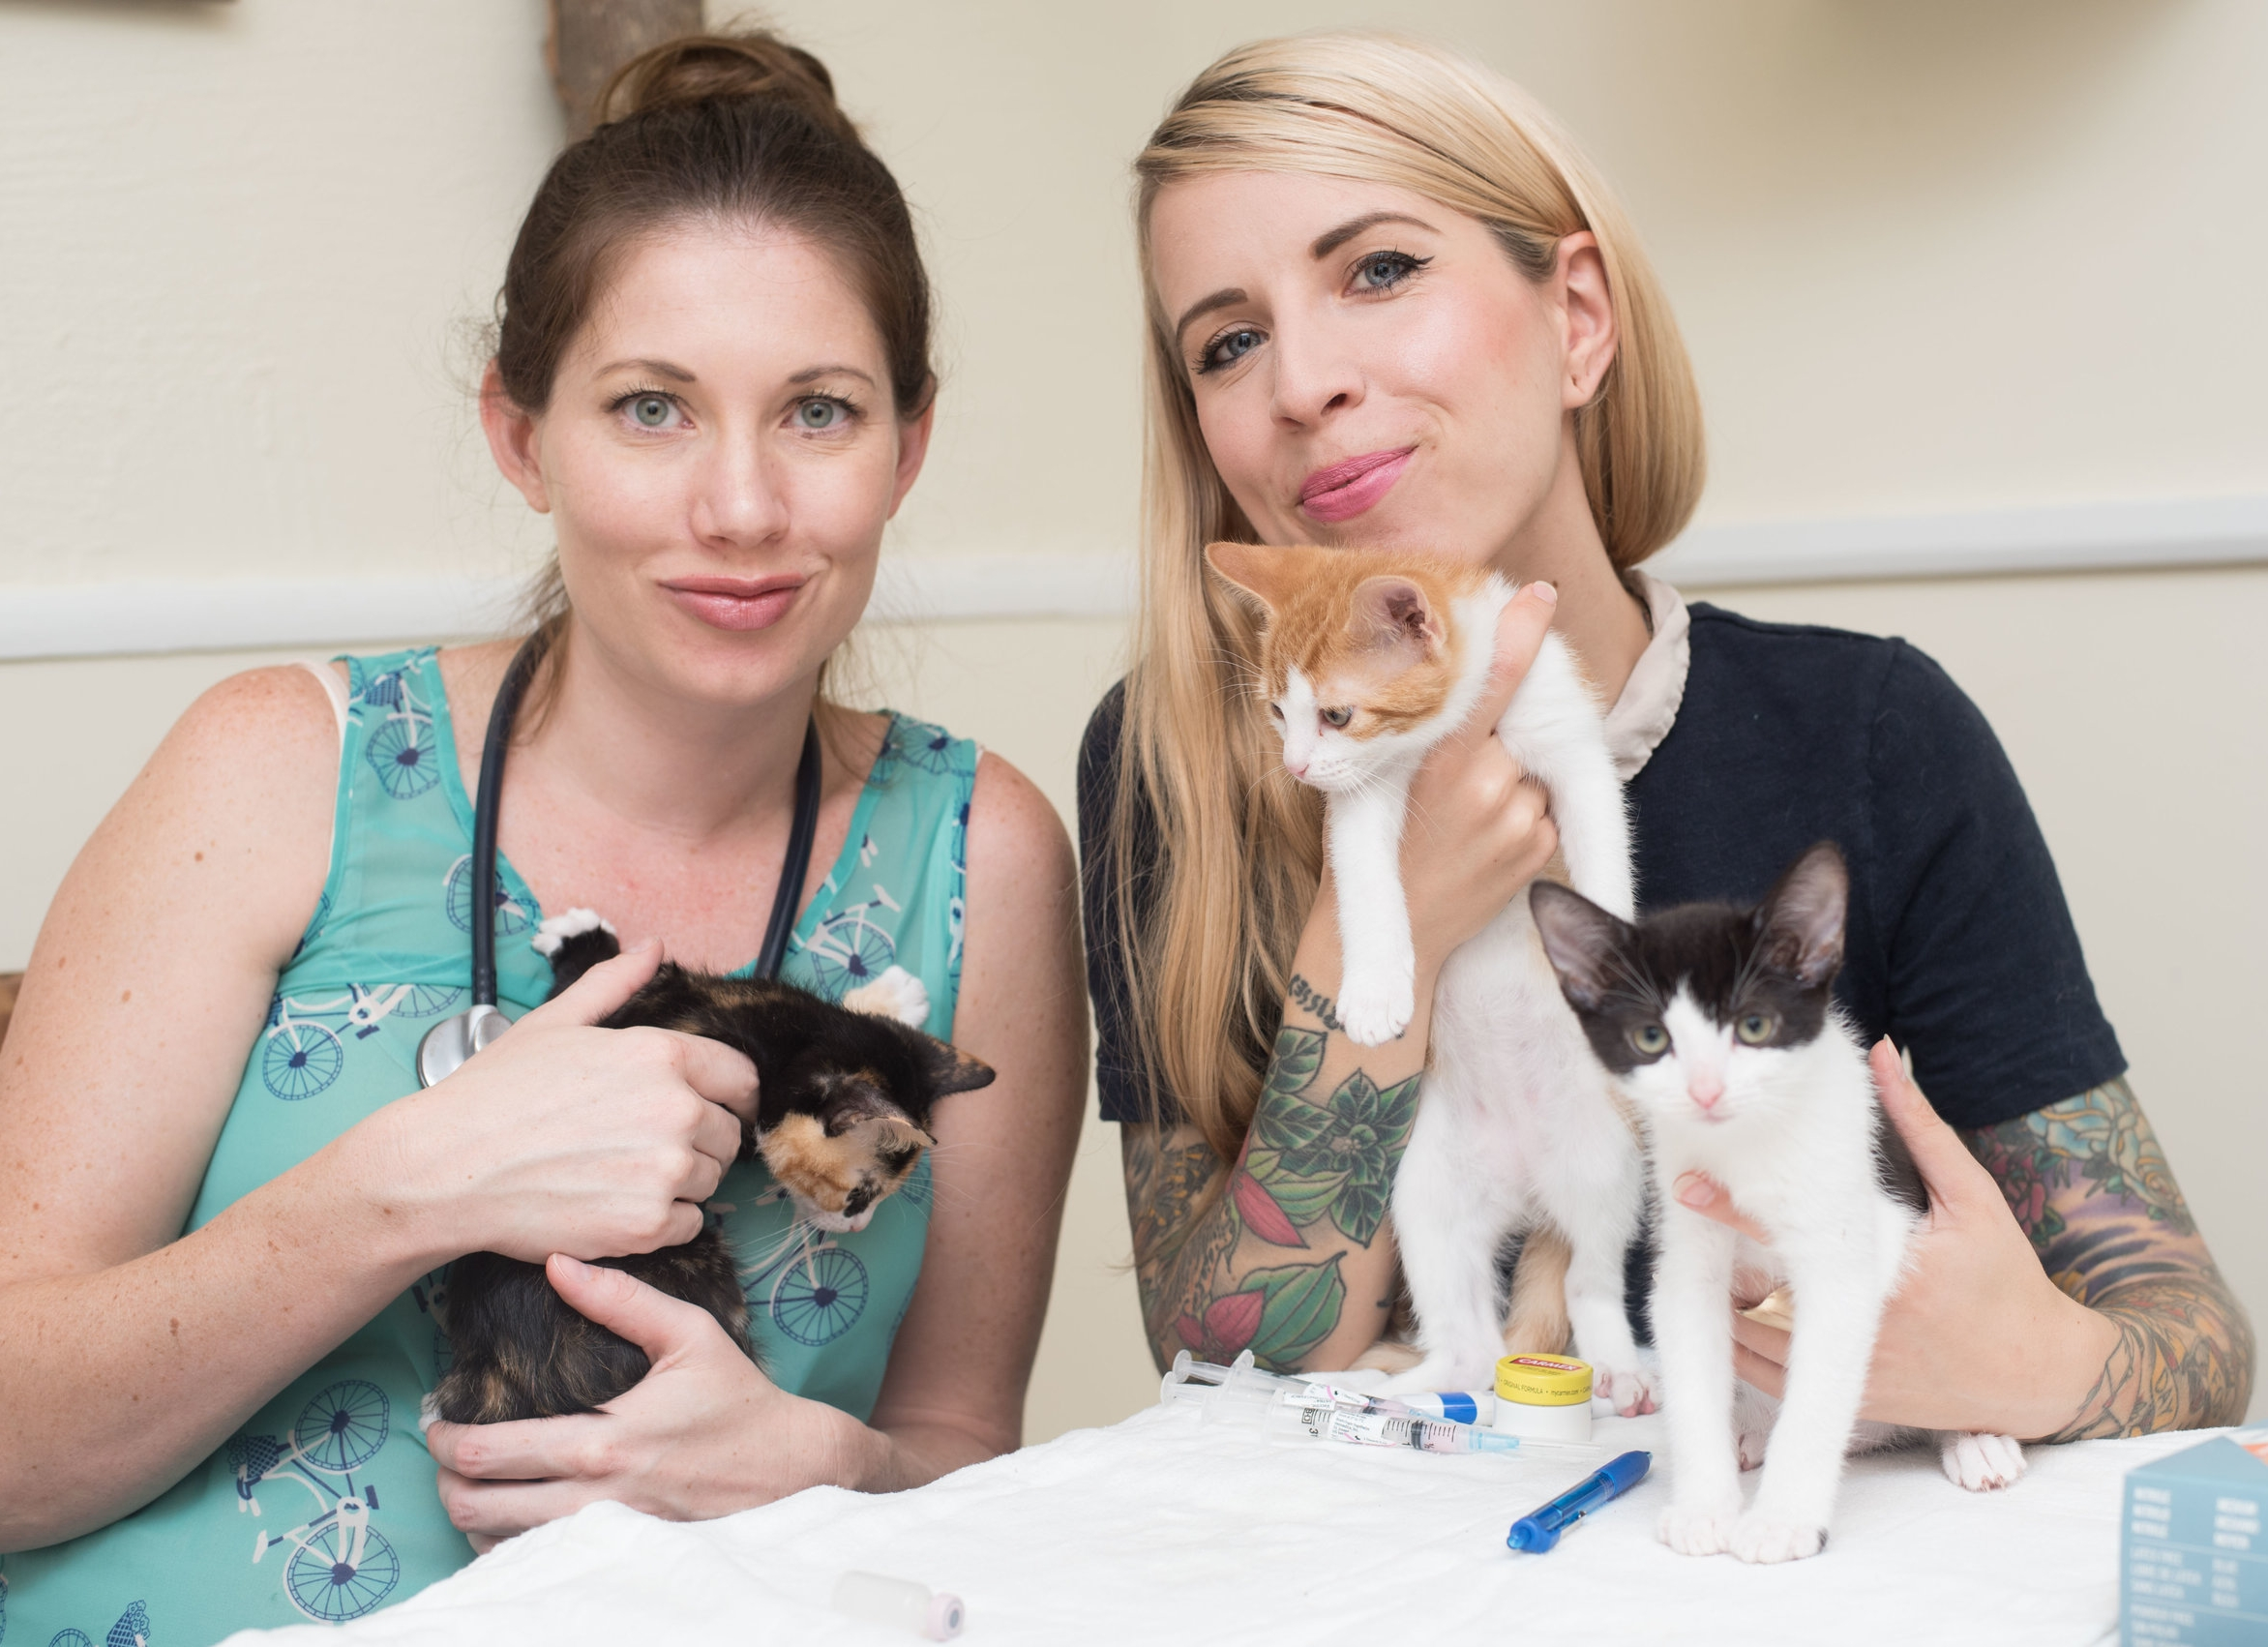 Dr. Erica and Hannah with kittens Bandit, Squeaky, and Bear.